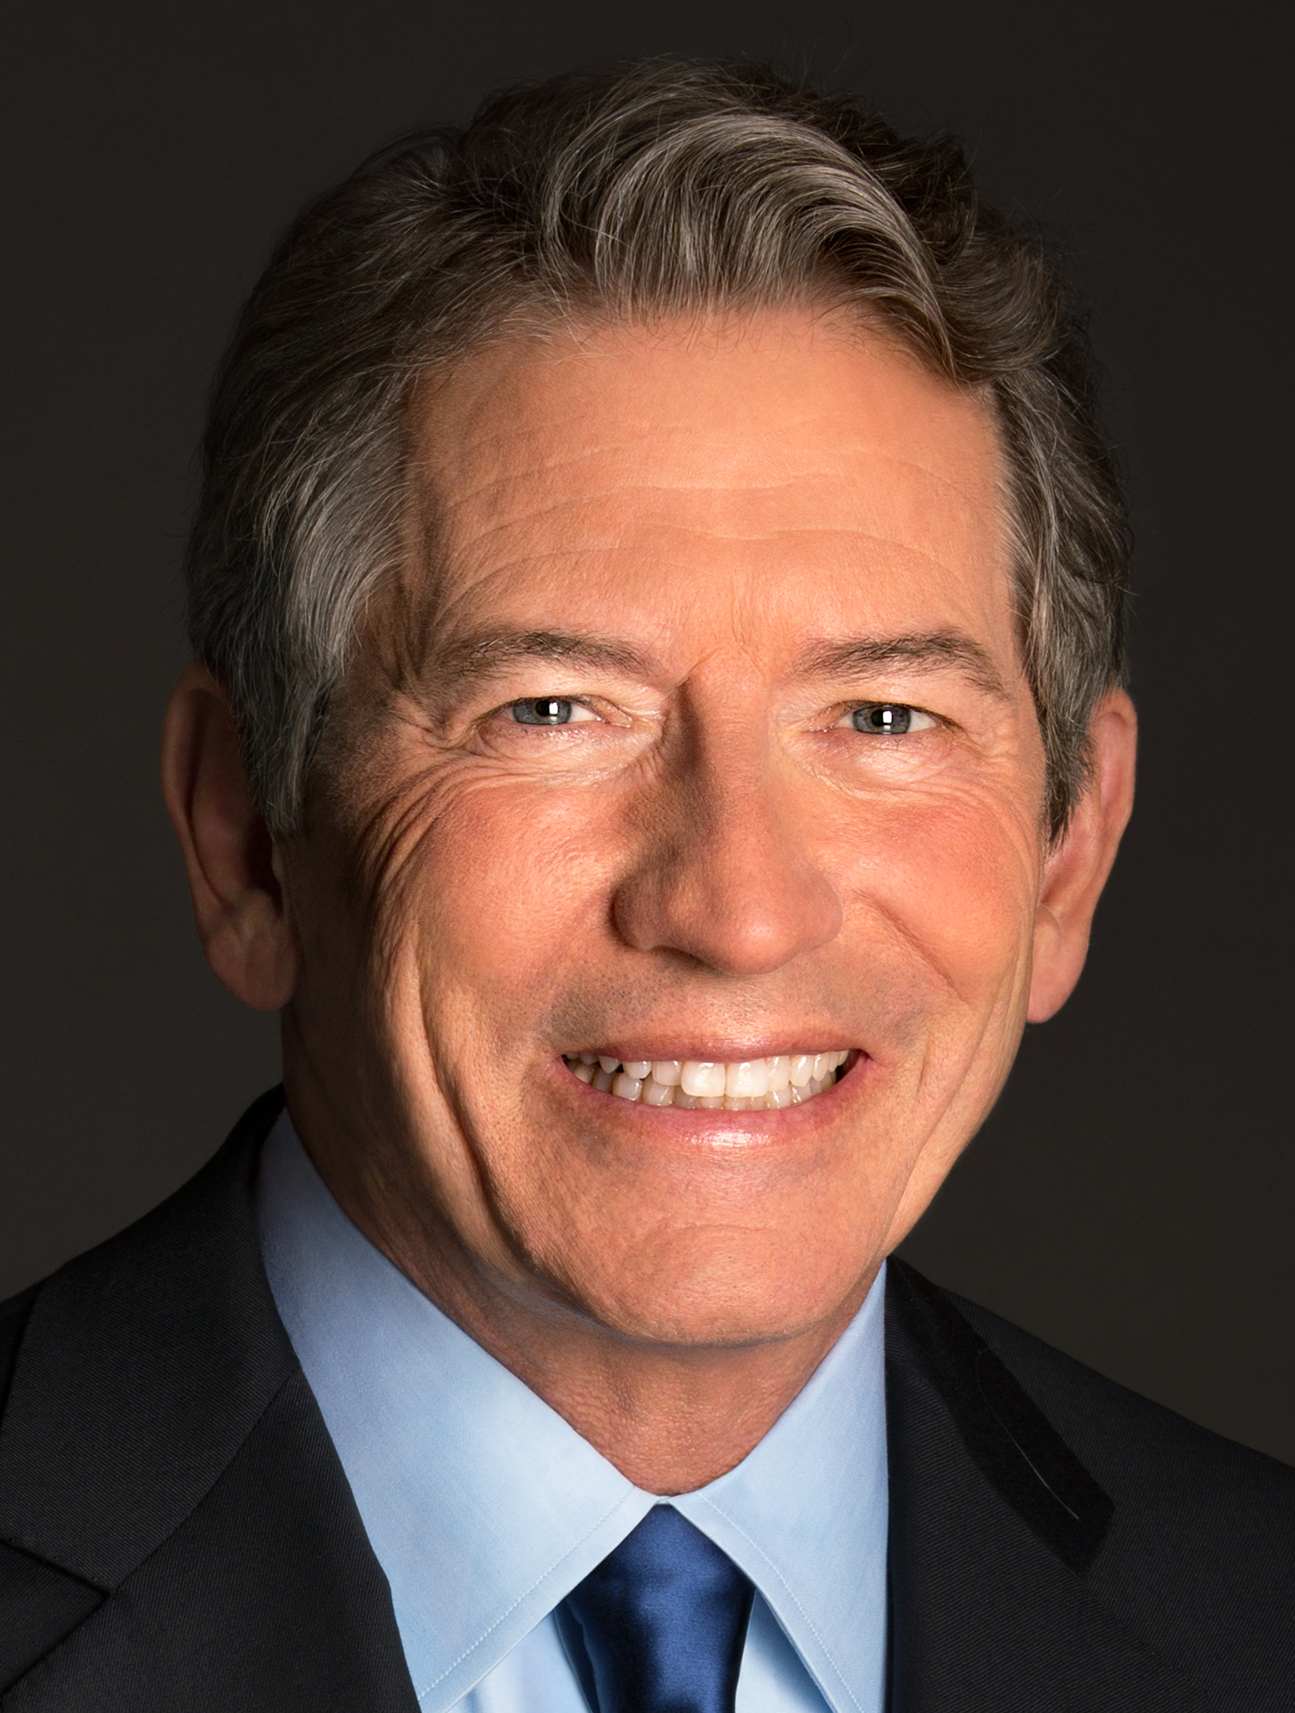 C3 IOT CEO Tom Siebel